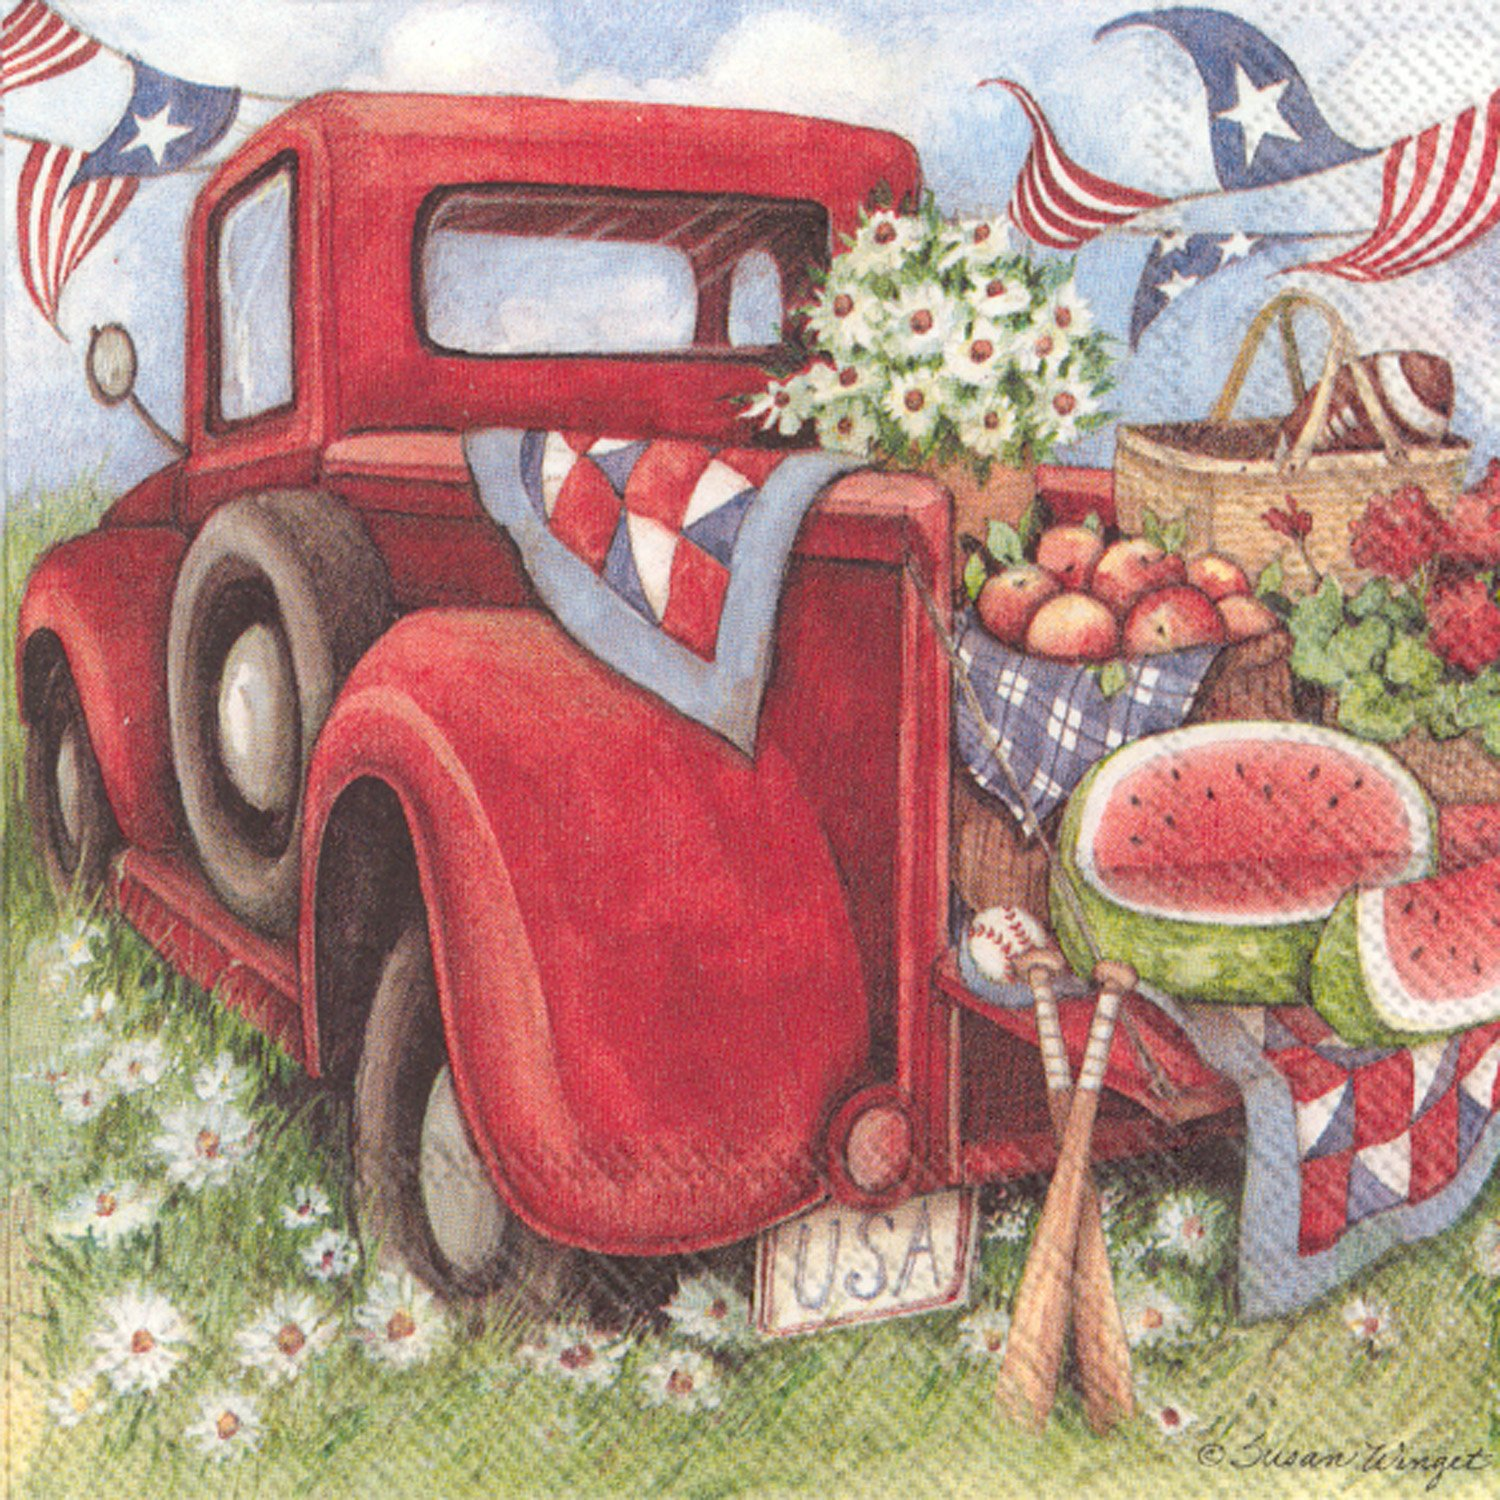 Celebrate the Home Spring/Summer 3-Ply Paper Luncheon Napkins, Truck, 20 Count